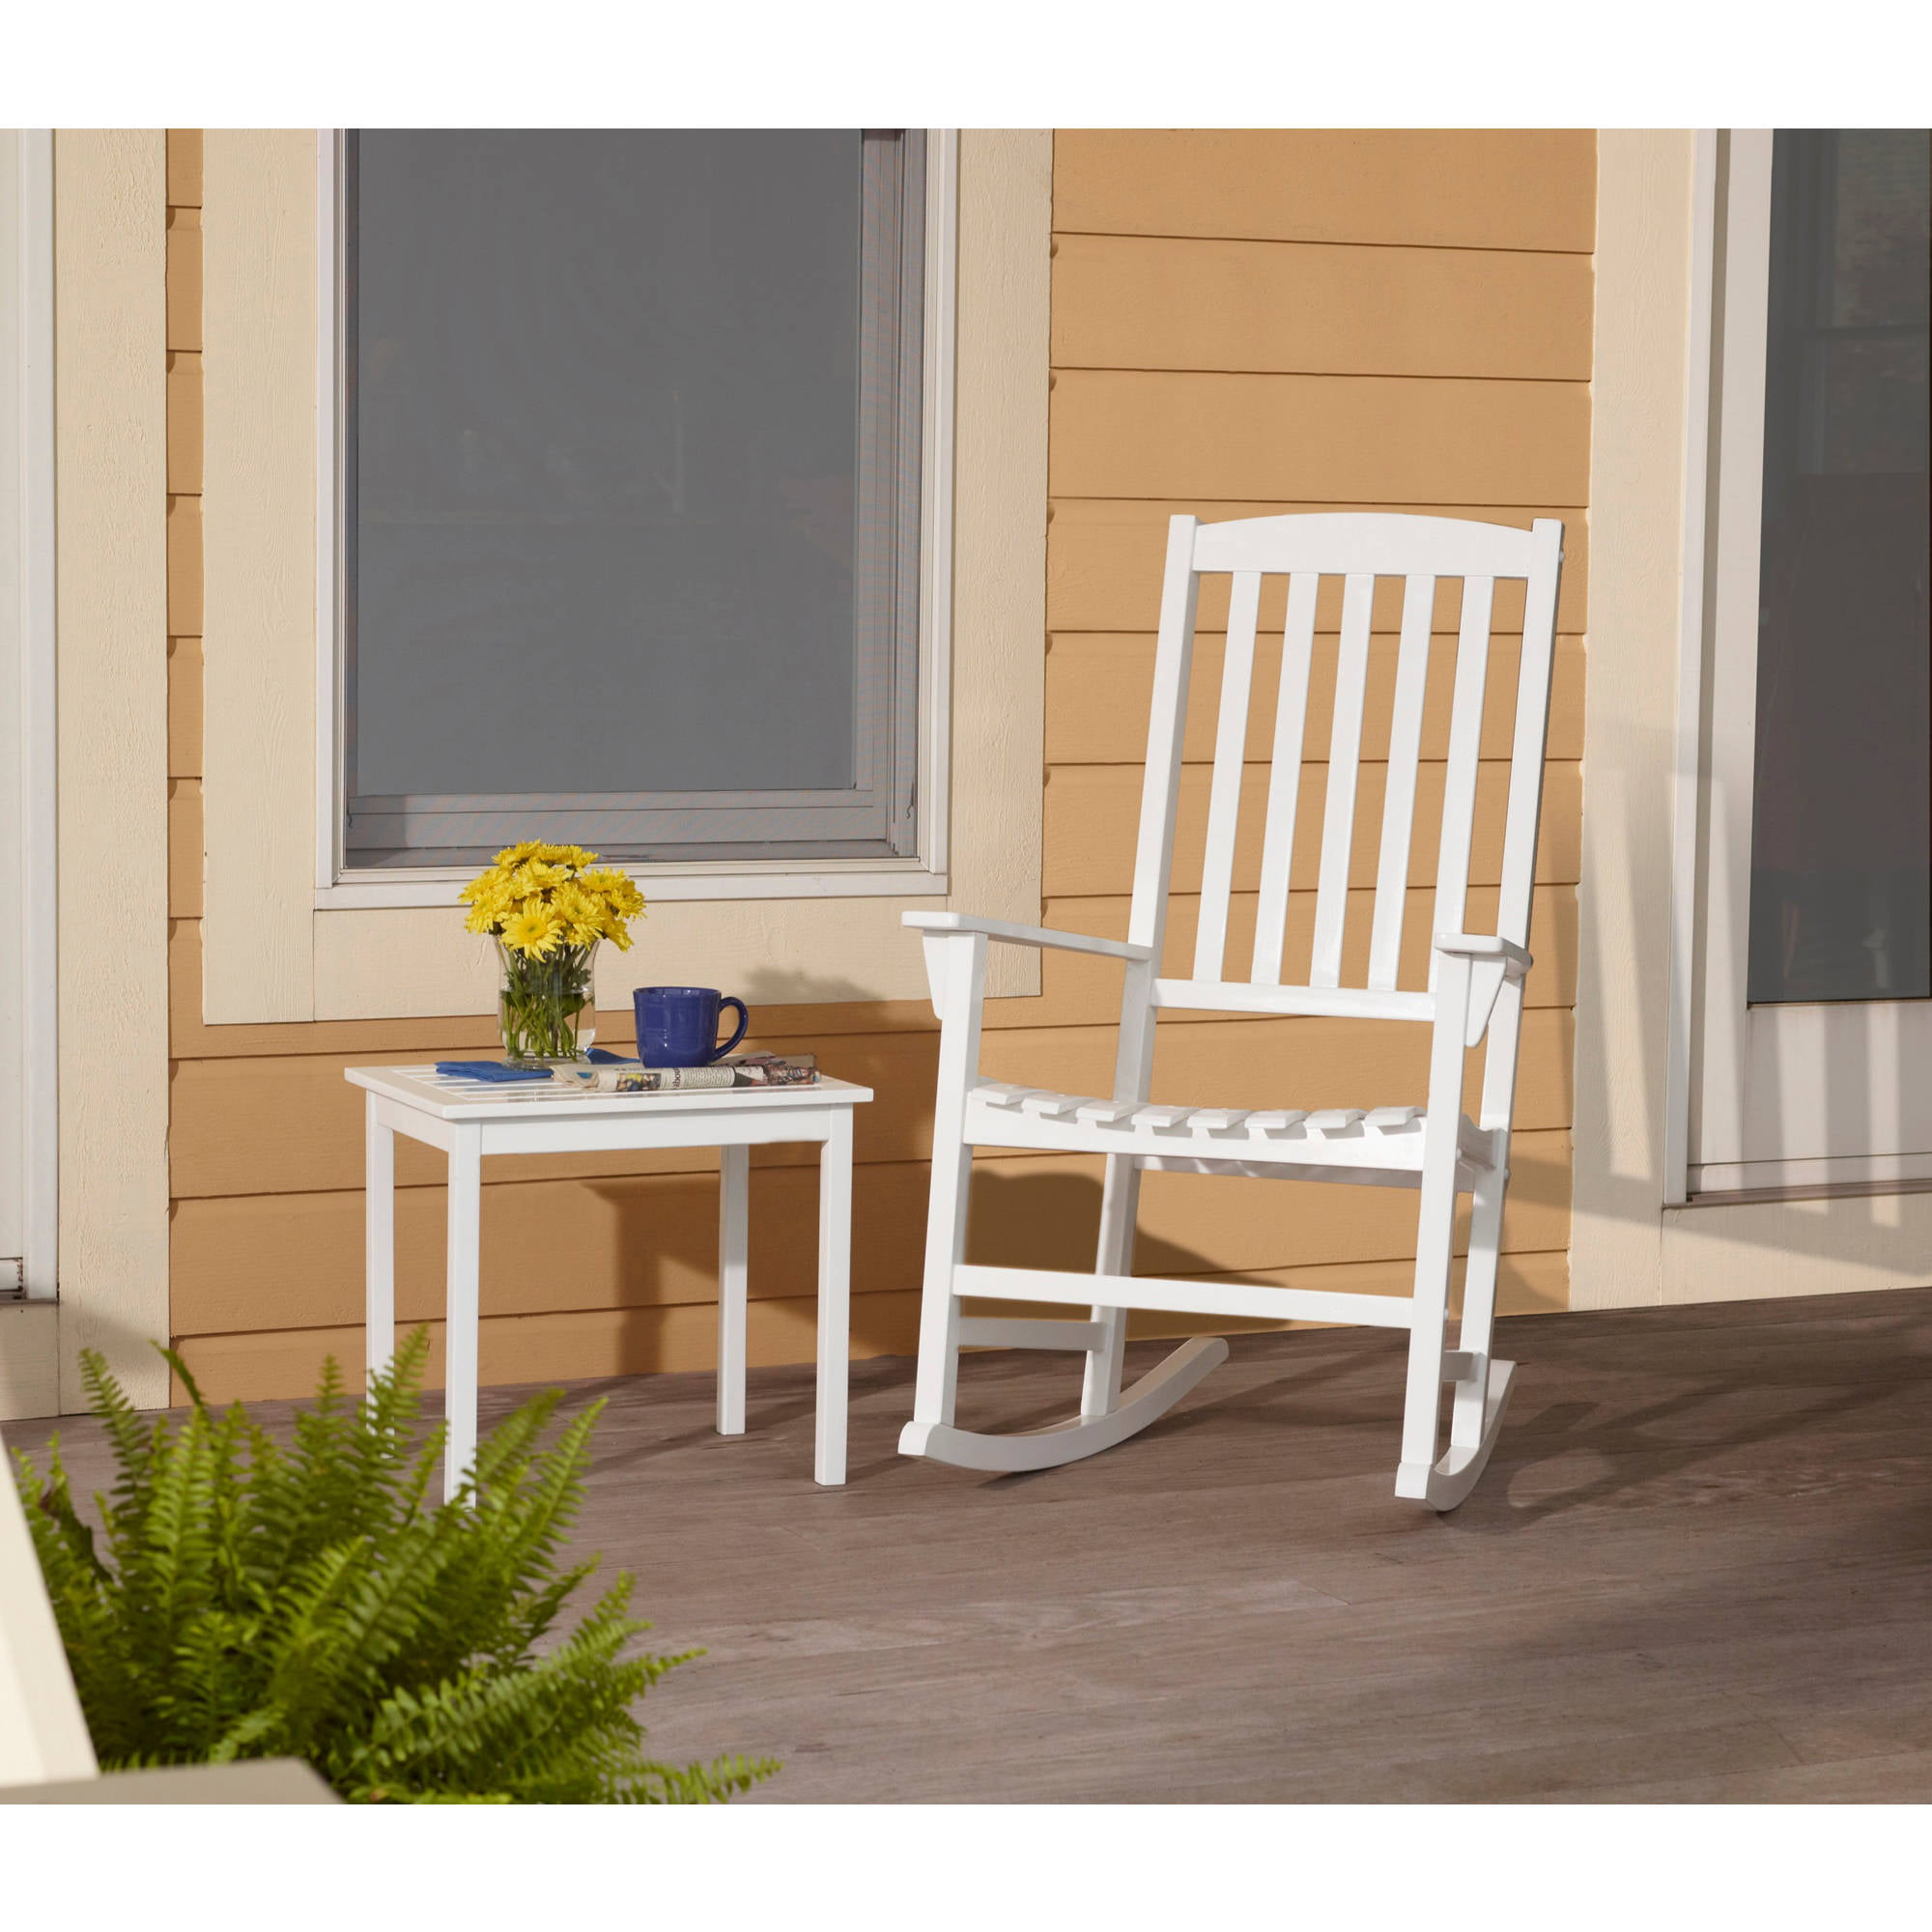 Mainstays Outdoor Rocking Chair, White   Walmart.com